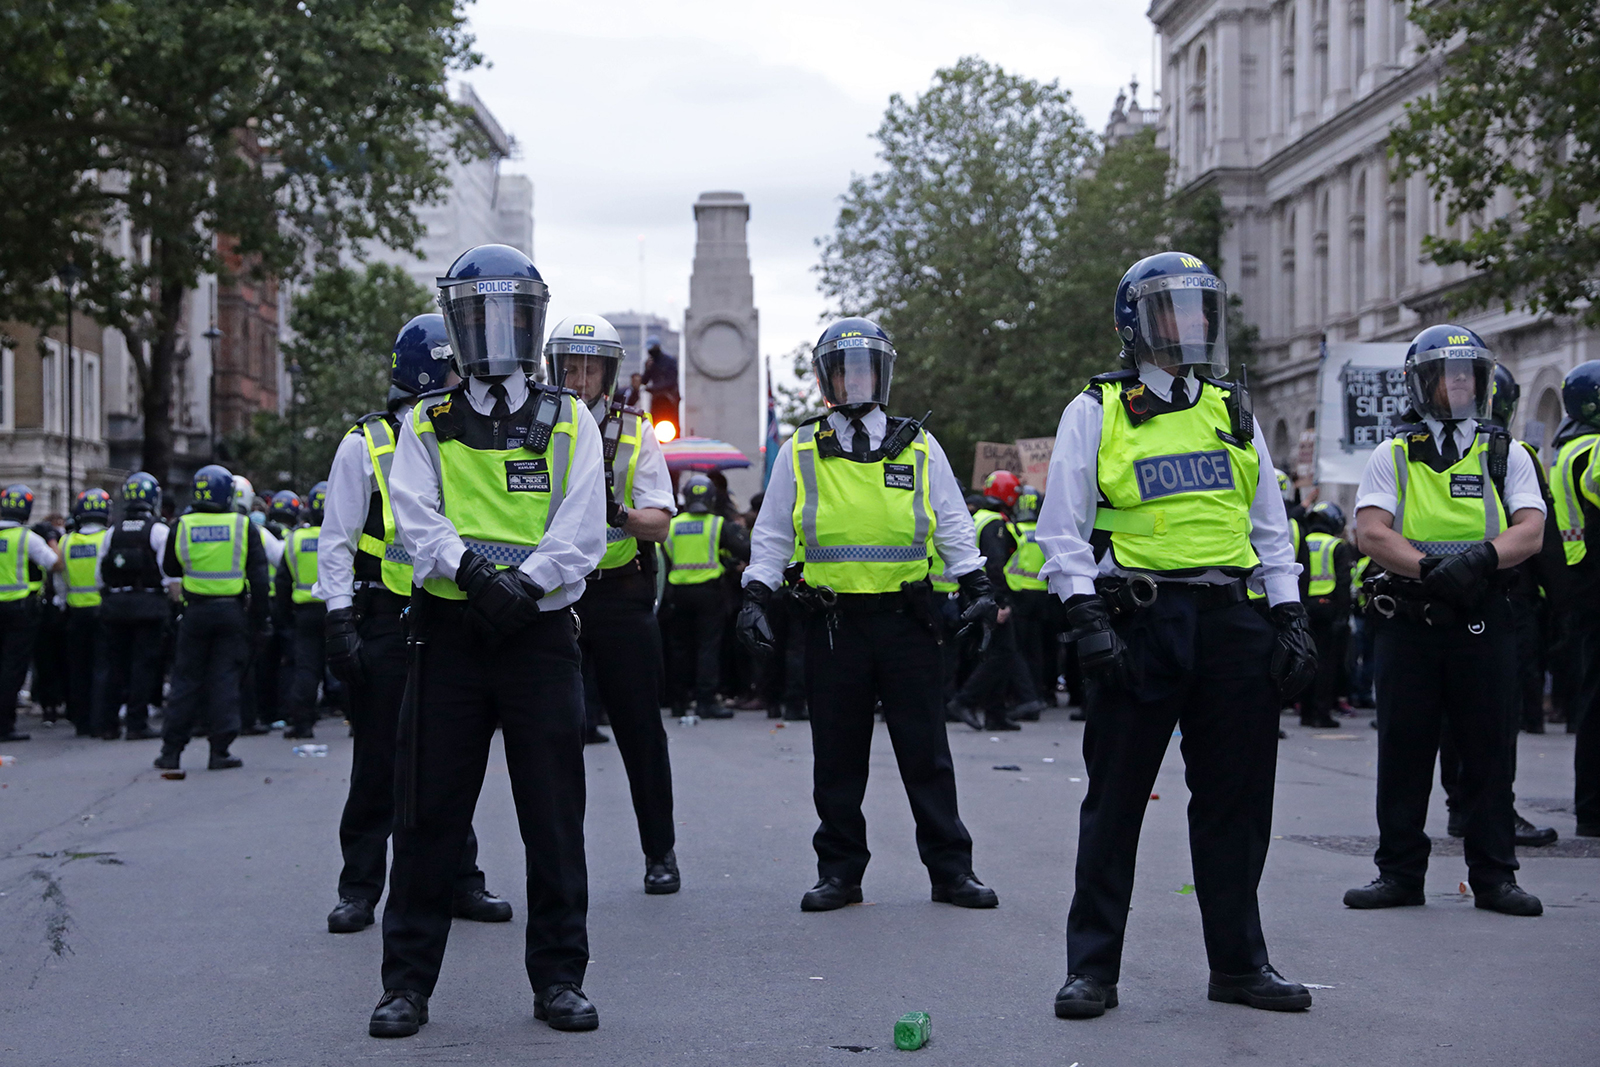 Lines of police officers block off Whitehall in central London after a demonstration, on Sunday, June 7.